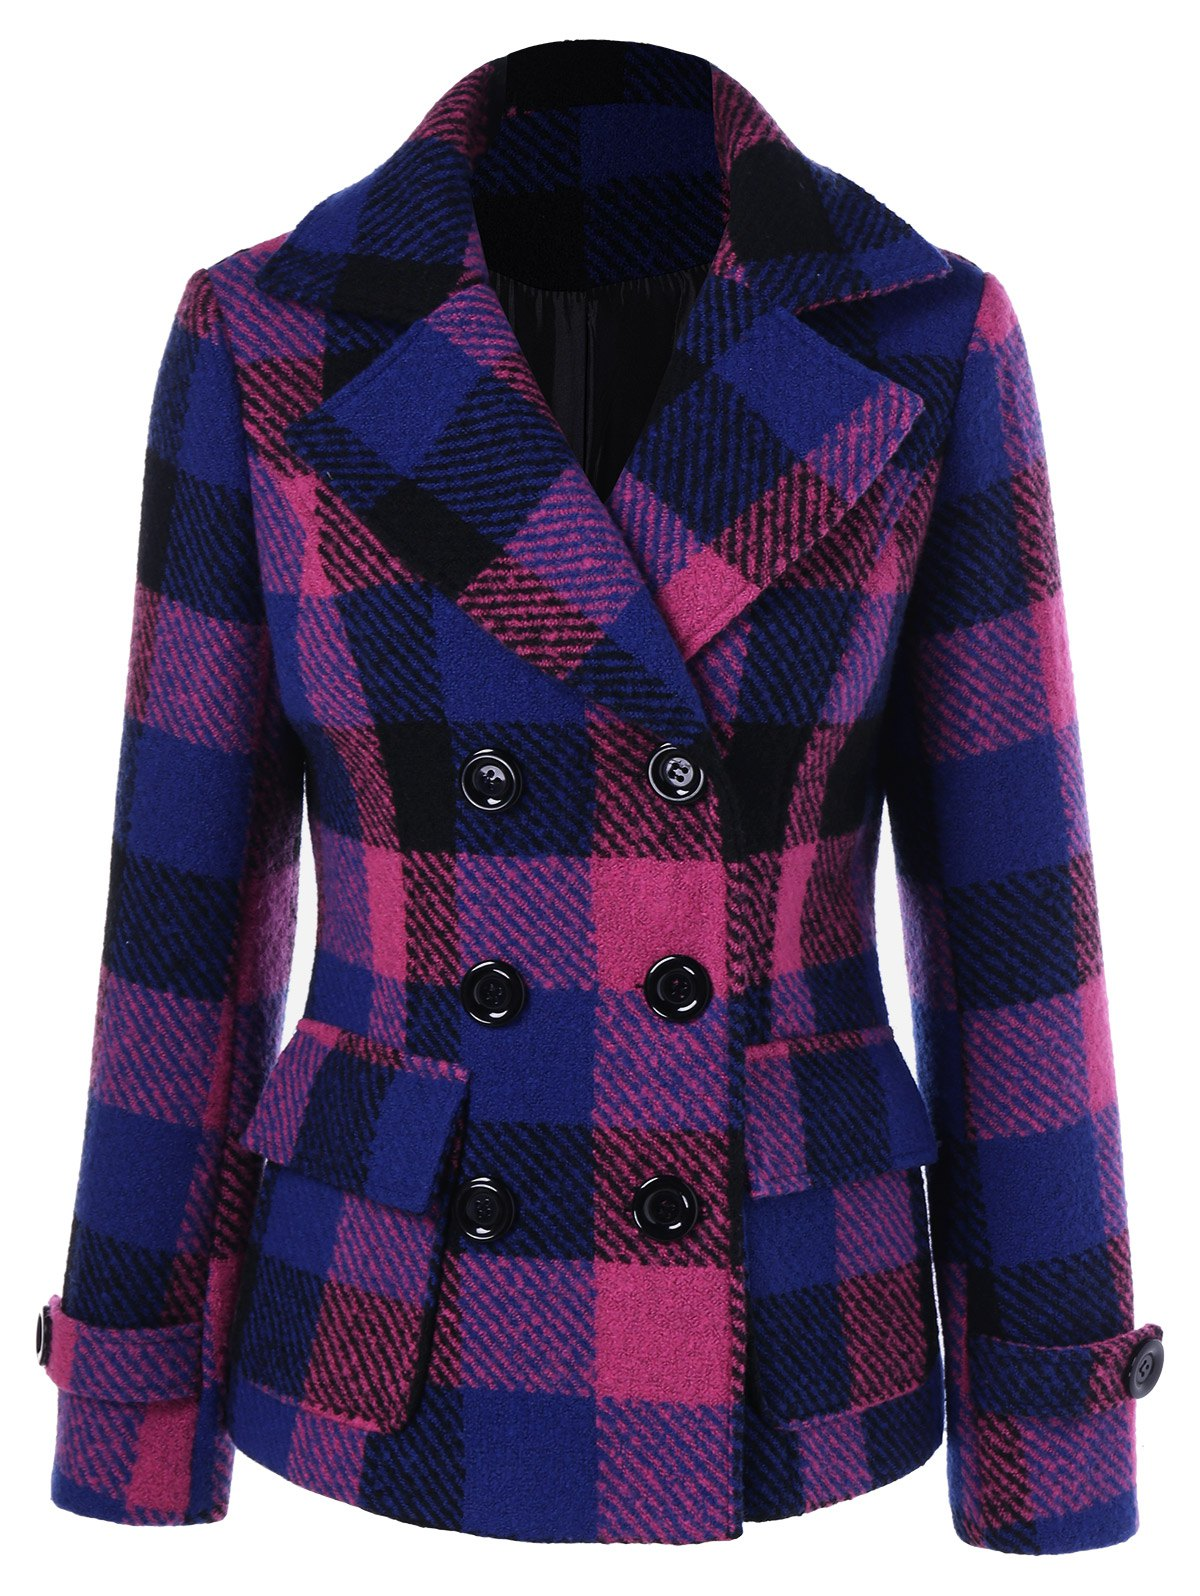 Flap Pockets Plaid Peacoat - CHECKED XL